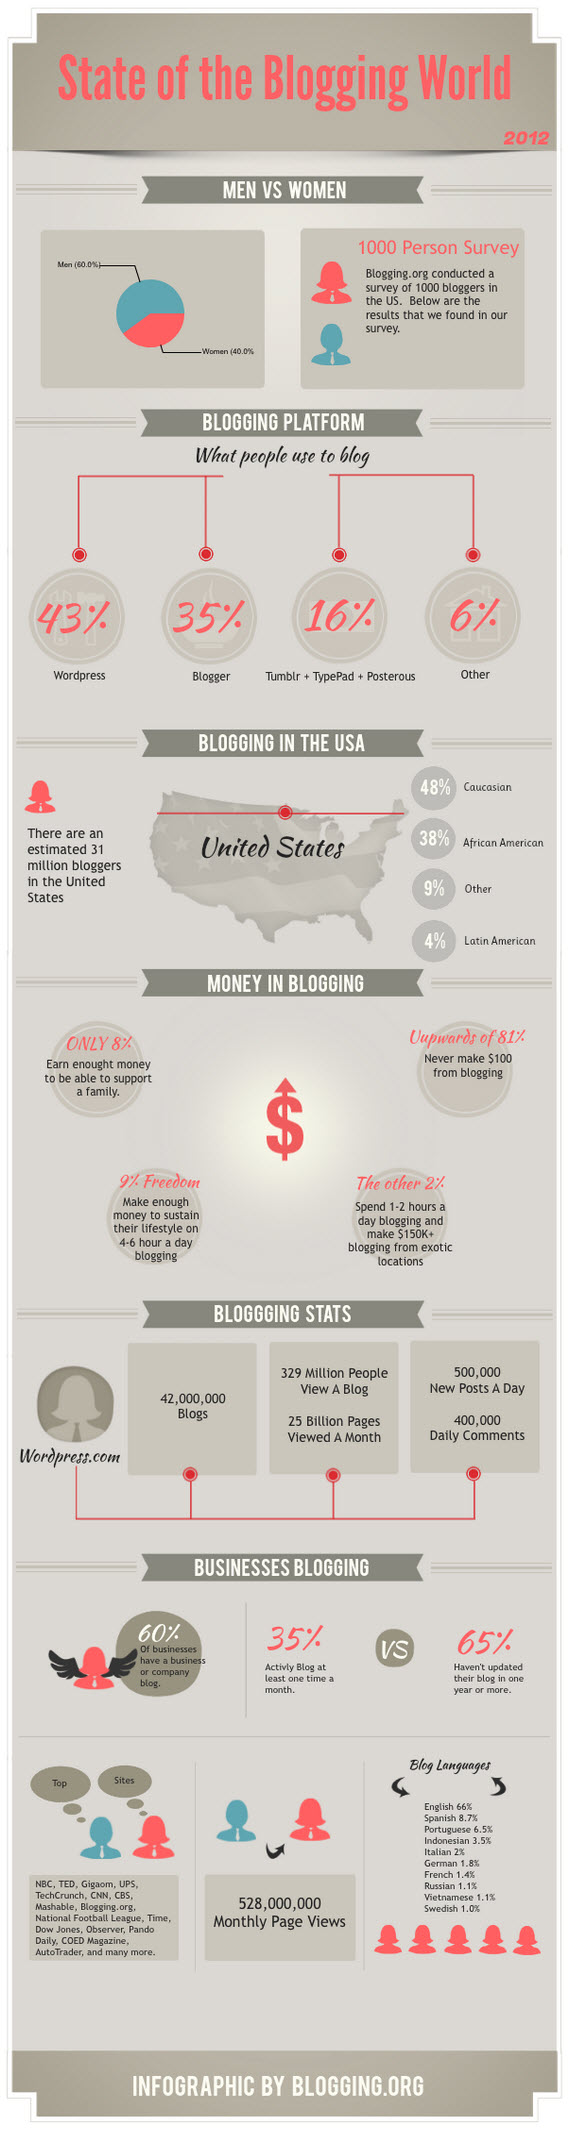 State-of-Blogging-in-2012